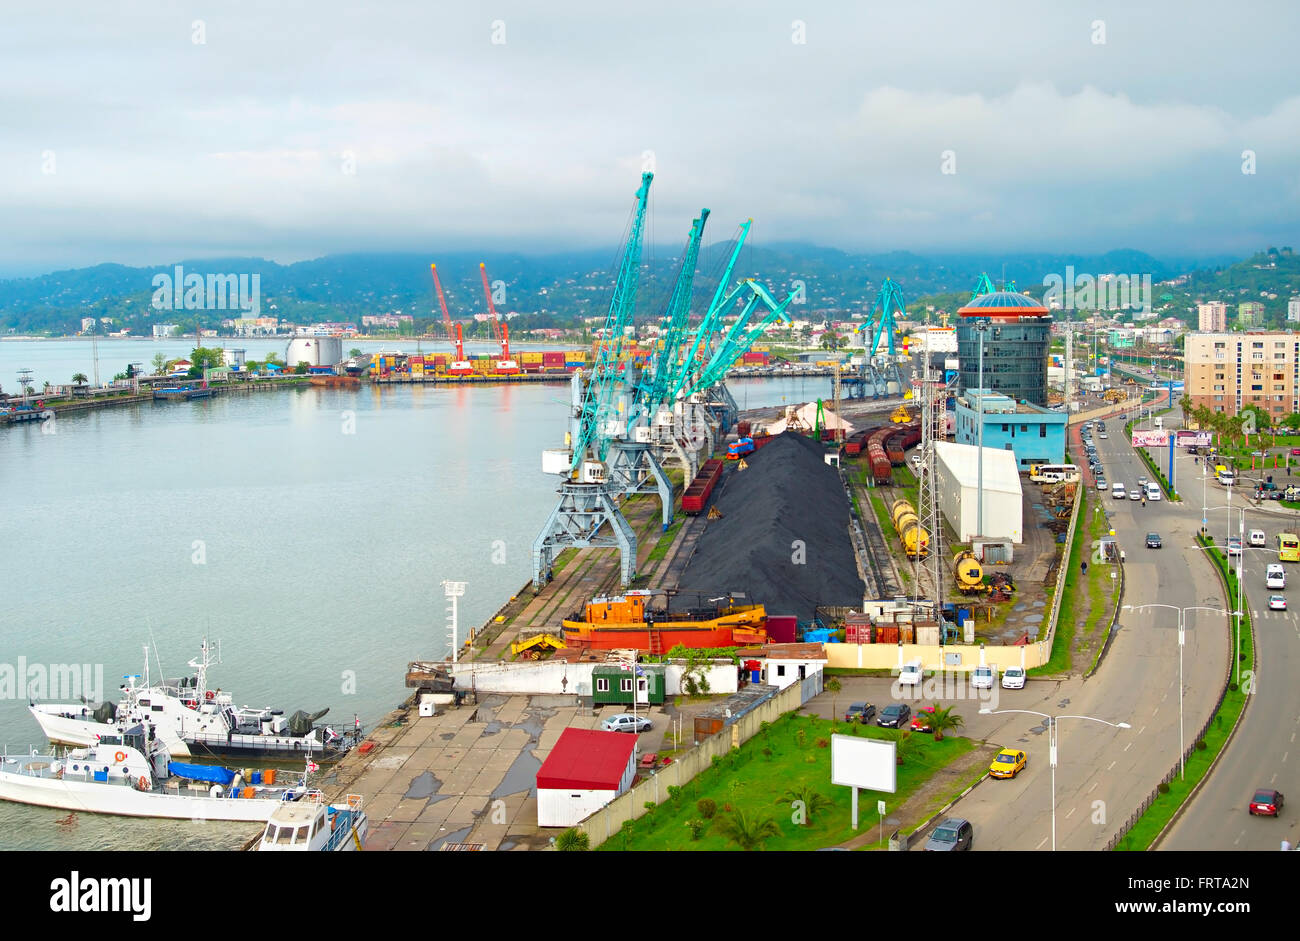 Top view of Batumi industrial sea port. Georgia Republic - Stock Image